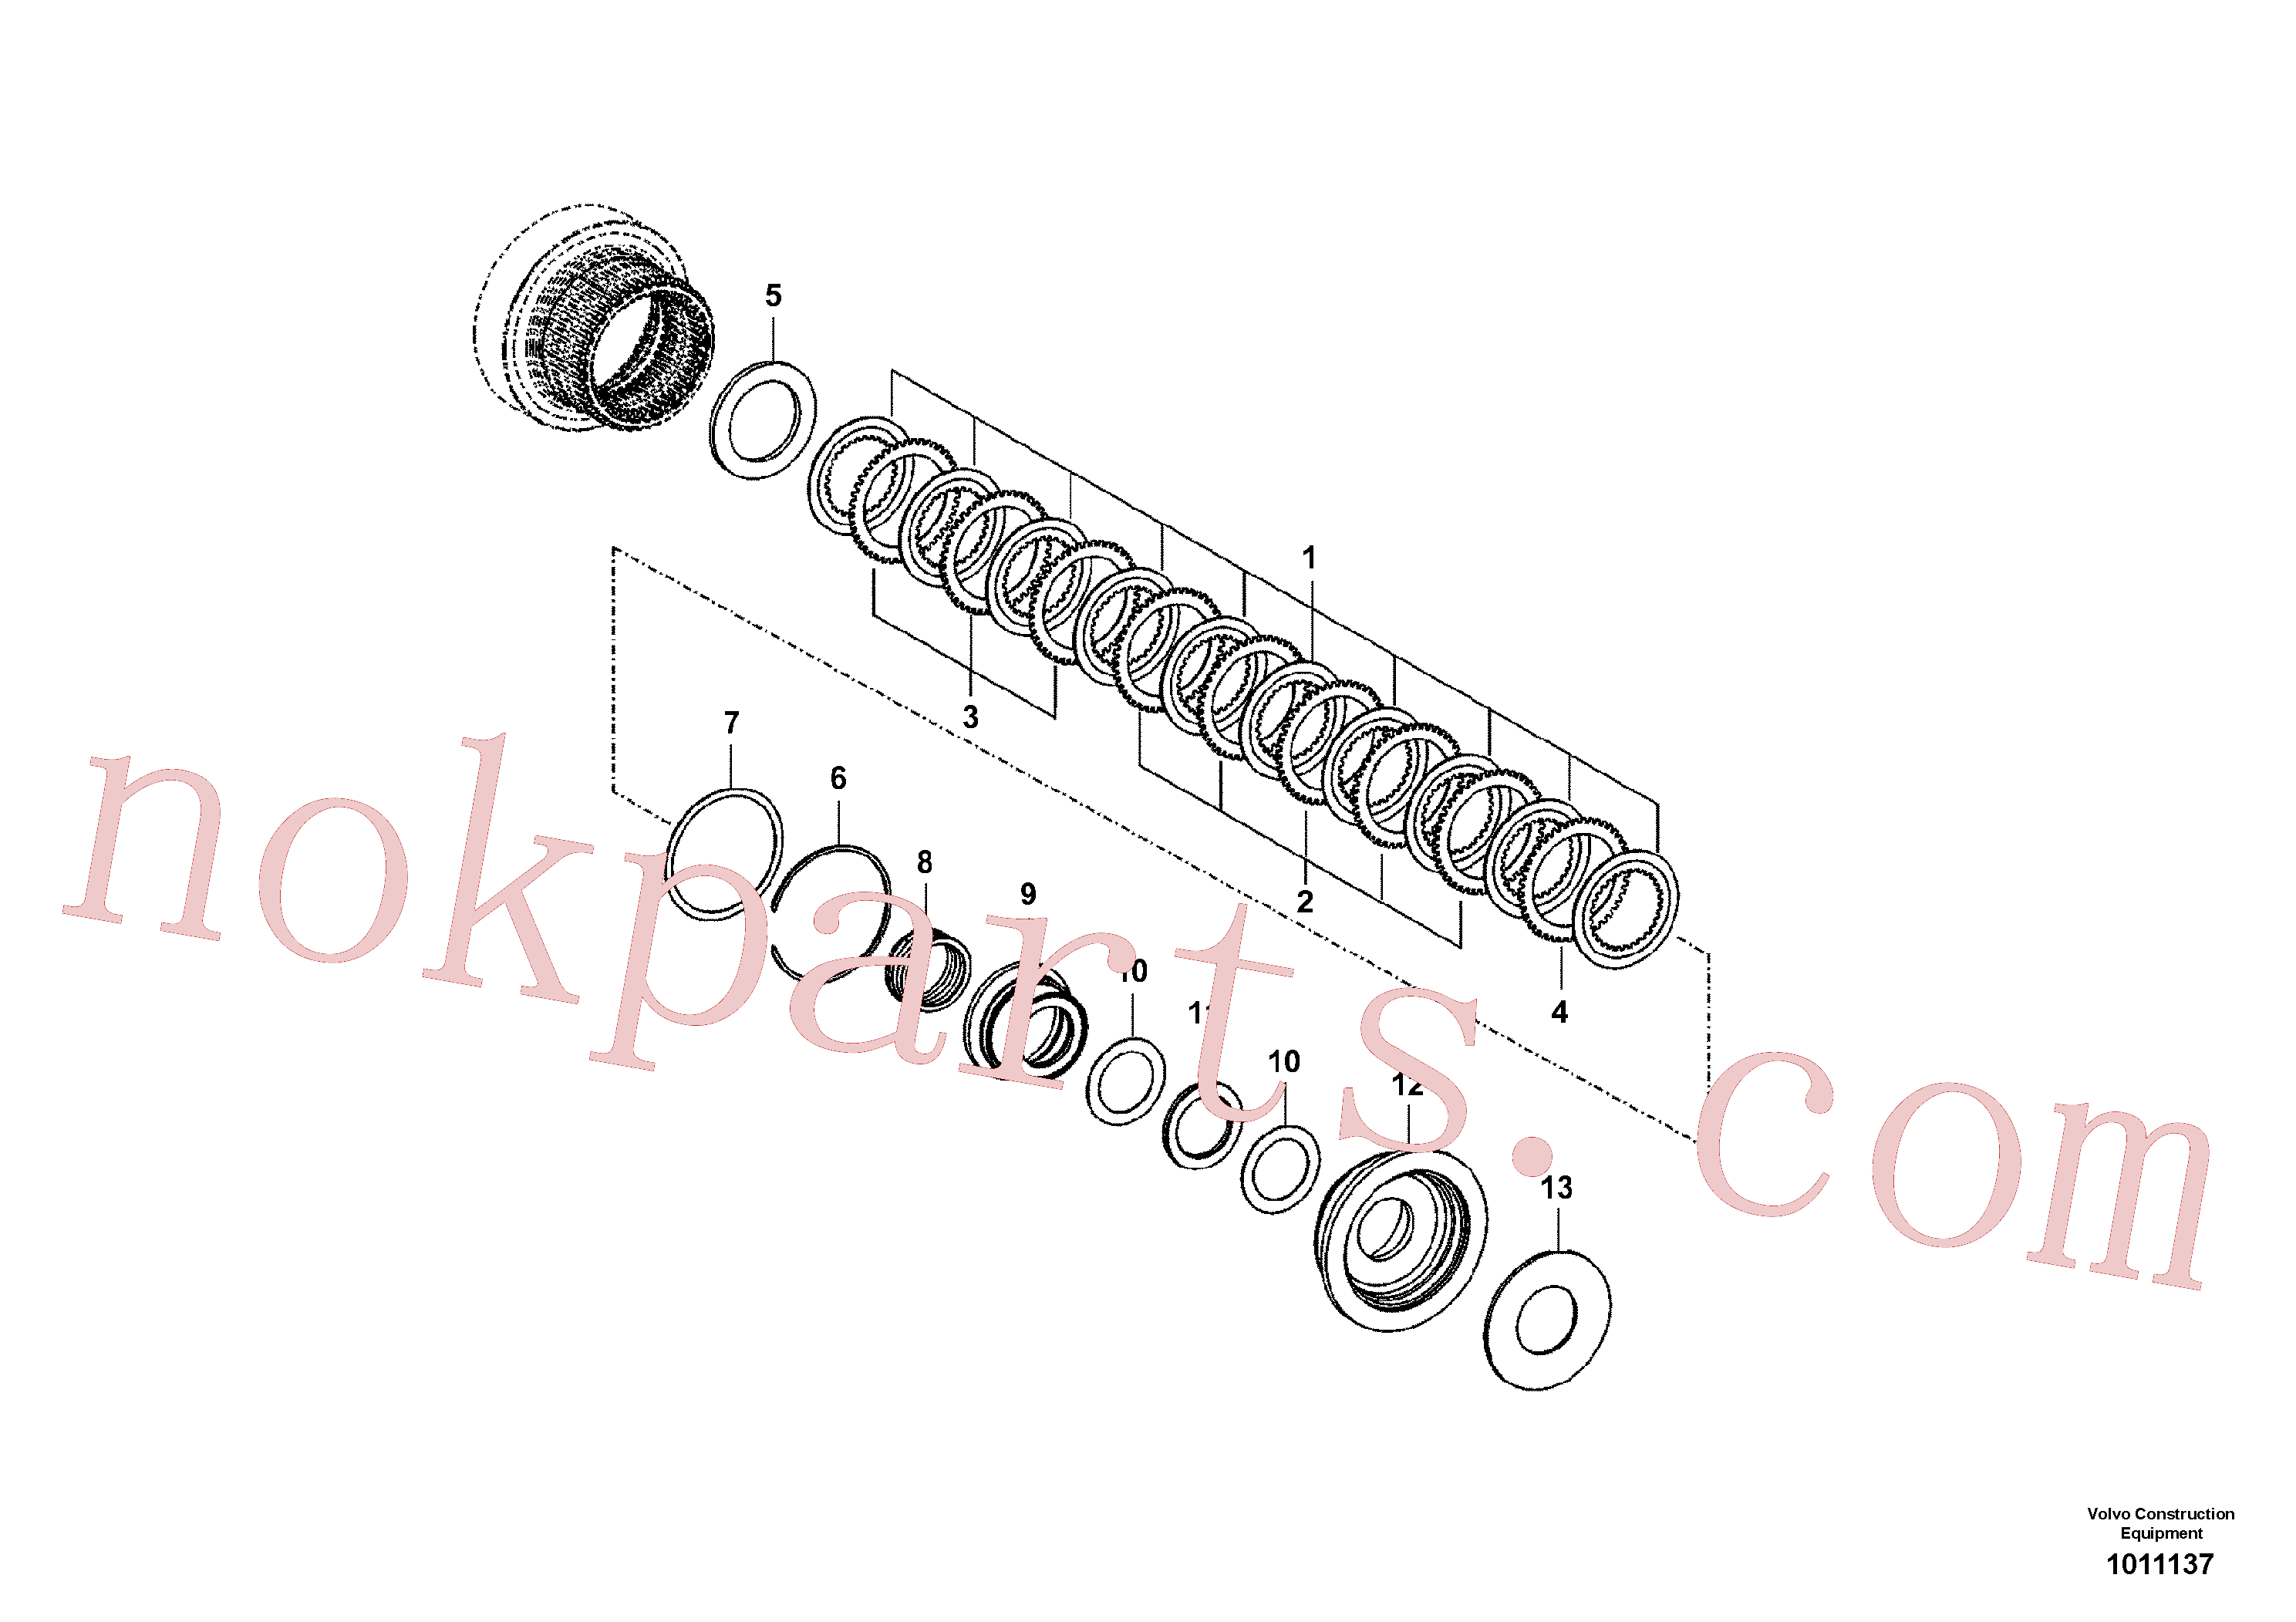 VOE14558045 for Volvo Coupling(1011137 assembly)